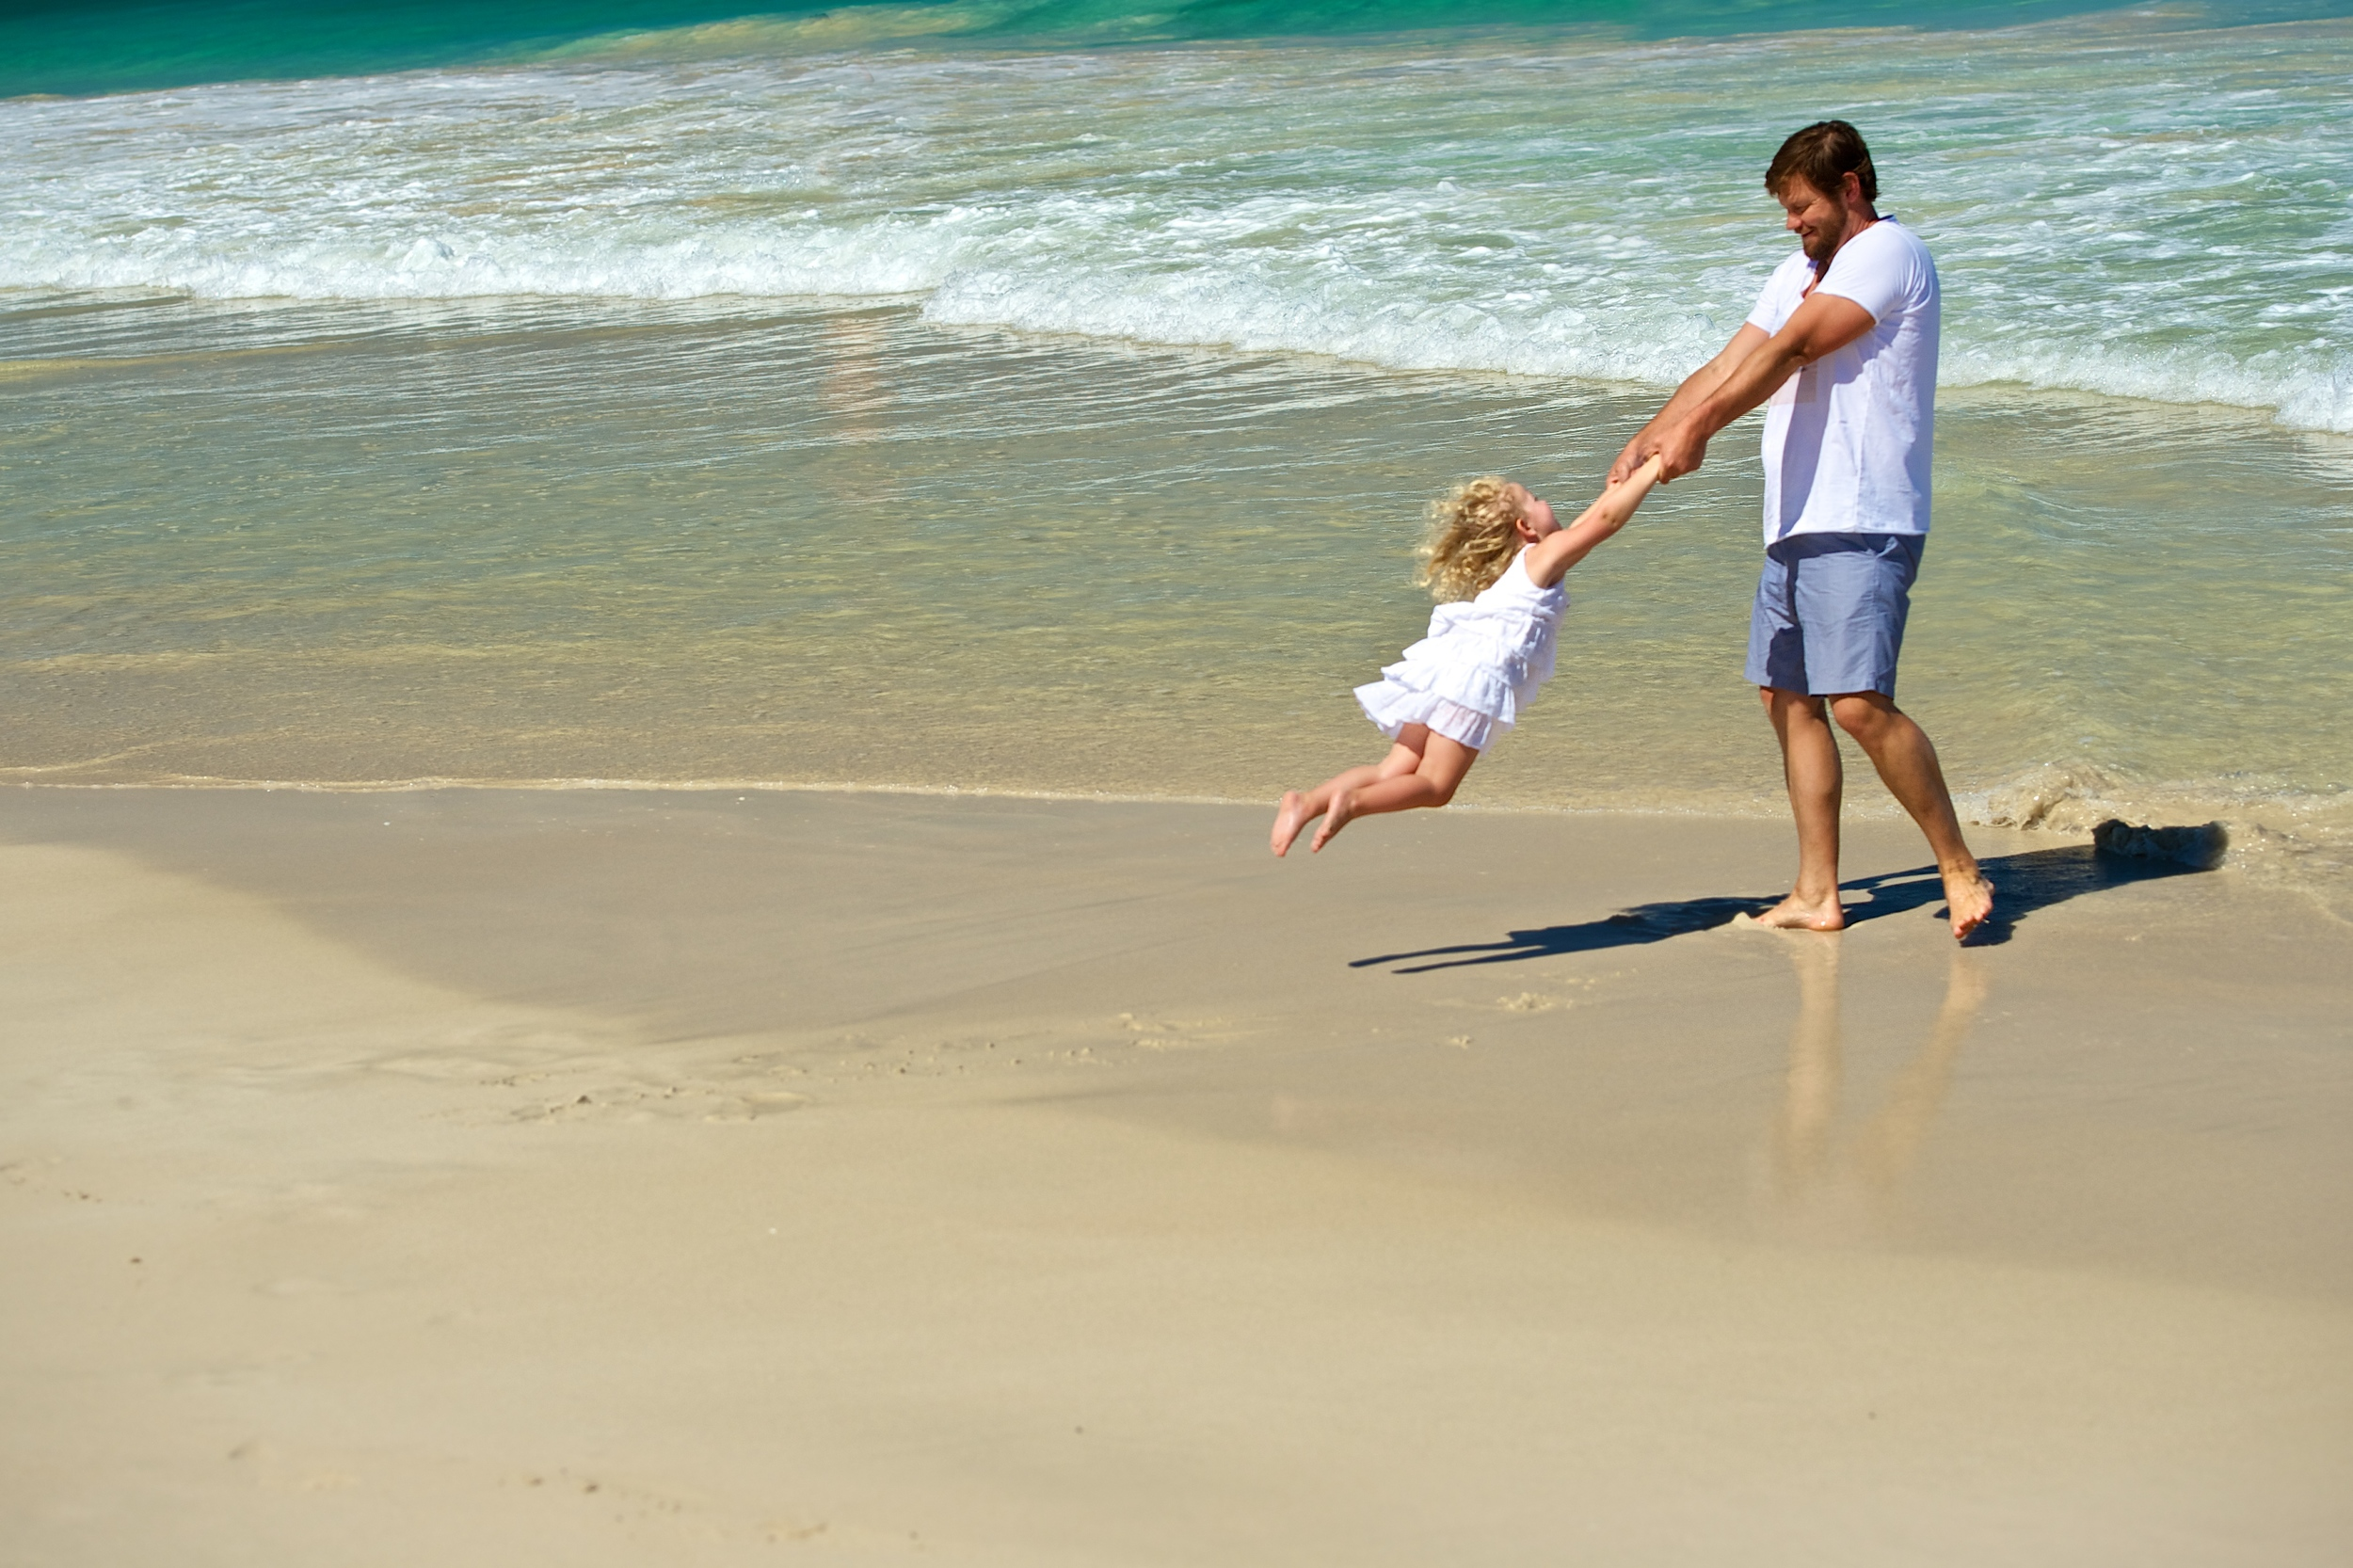 A Dad spins his daughter at the beach in this amazing family photo